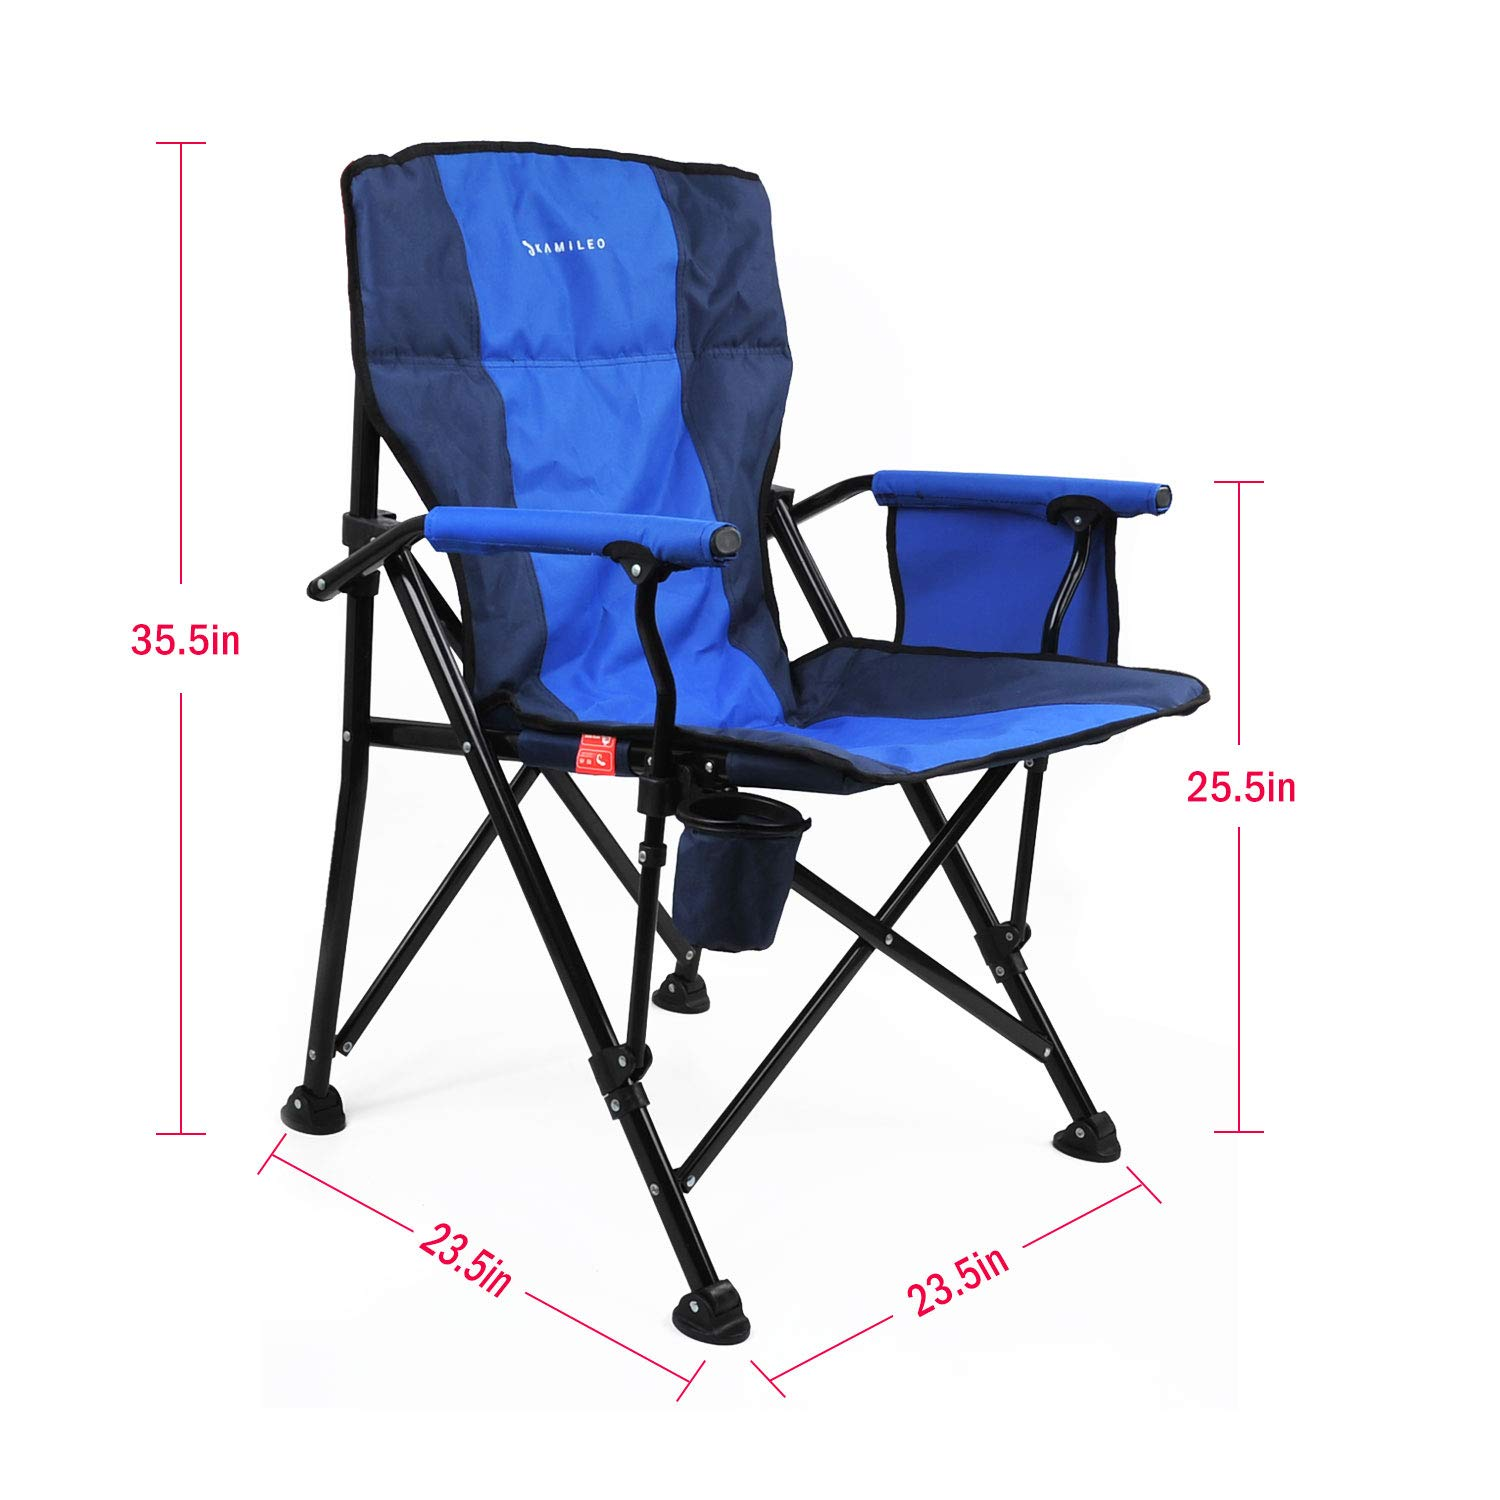 Kamileo Camping Chair, Folding Portable Lawn Chair with Padded Armrest Cup Holder and Storage Pocket Carry Bag Included